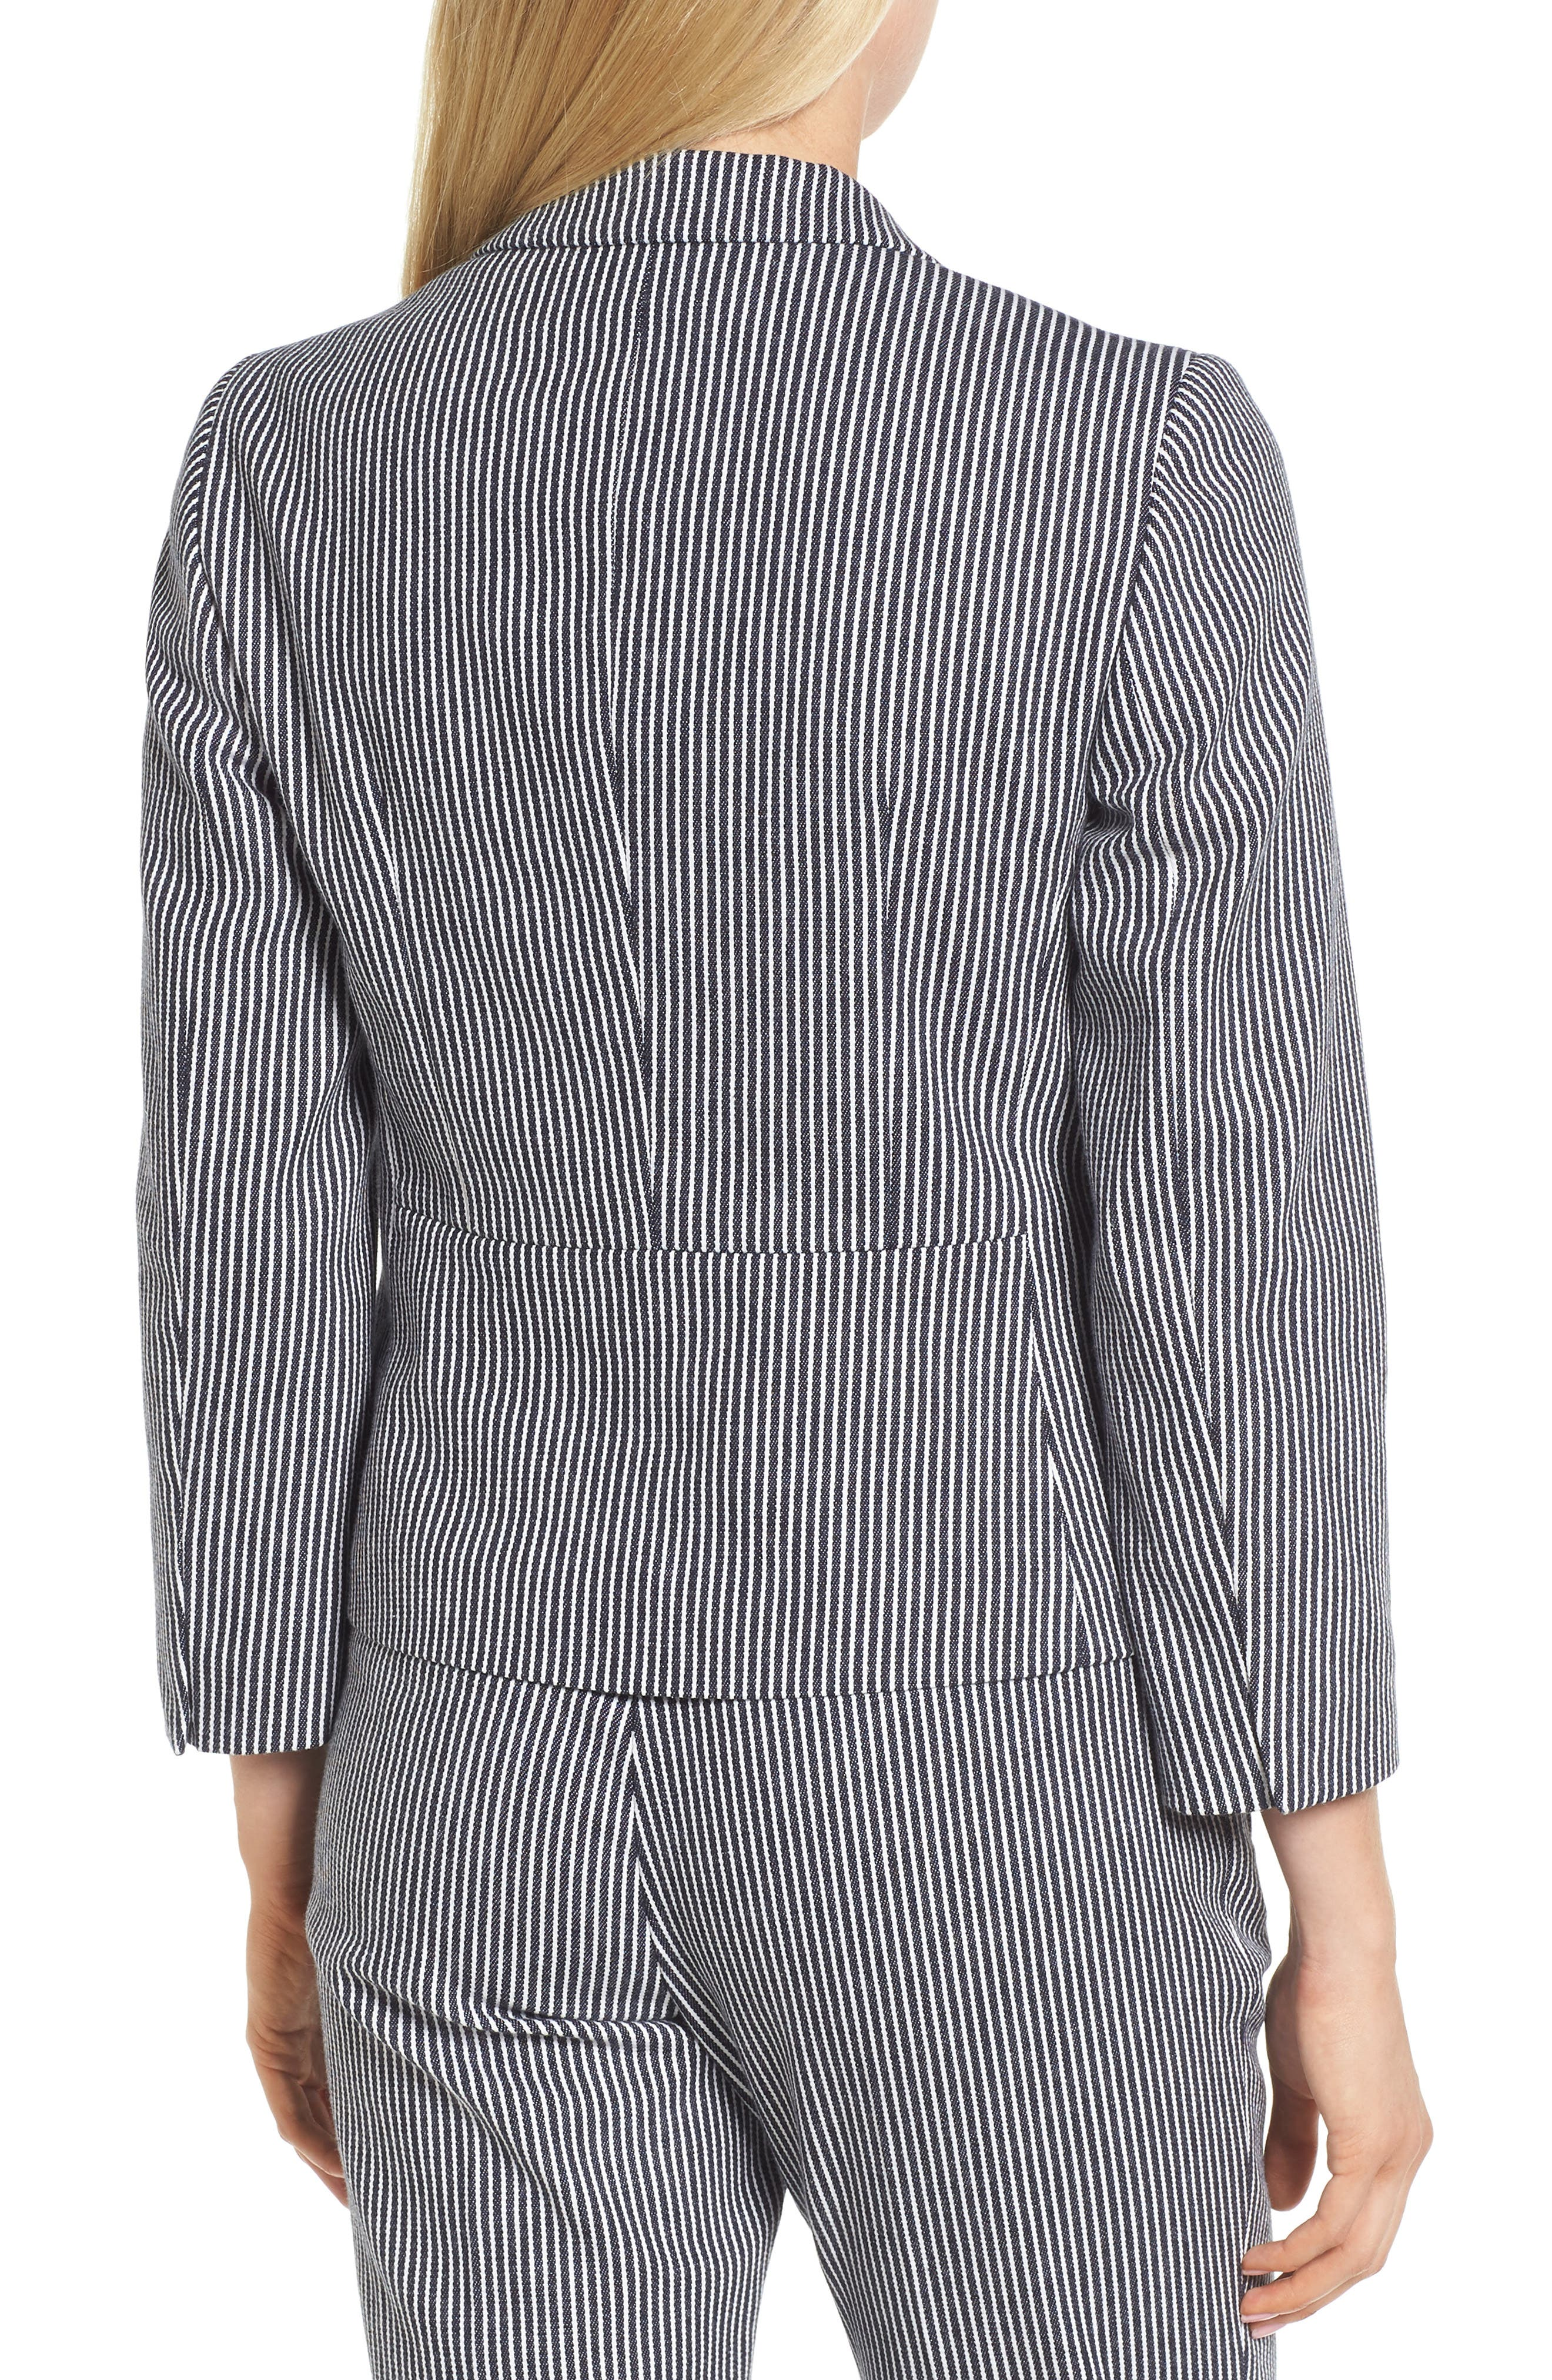 Katemika Stripe Stretch Cotton Suit Jacket,                             Alternate thumbnail 2, color,                             461